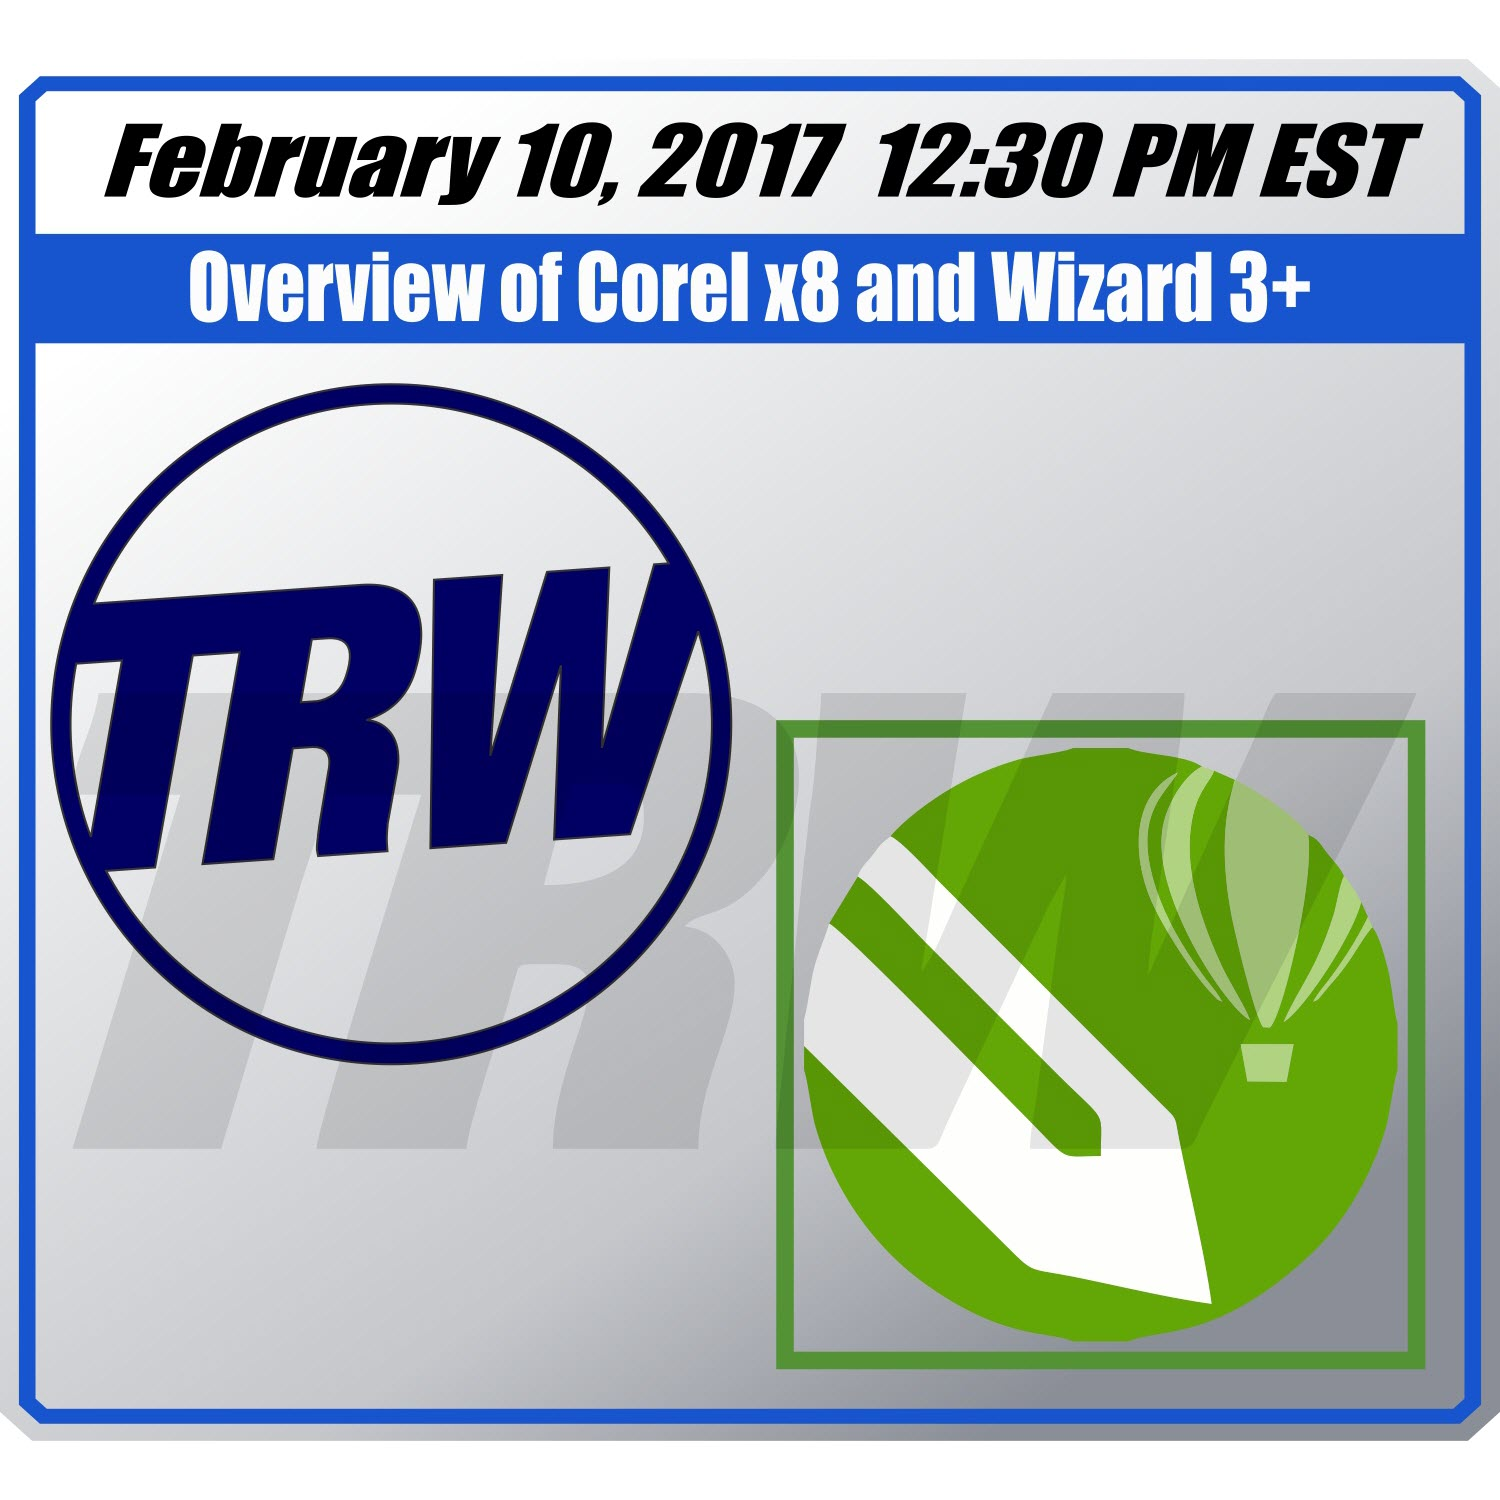 Beginner: Overview of Corel x8 and TRW Design Wizard 3+